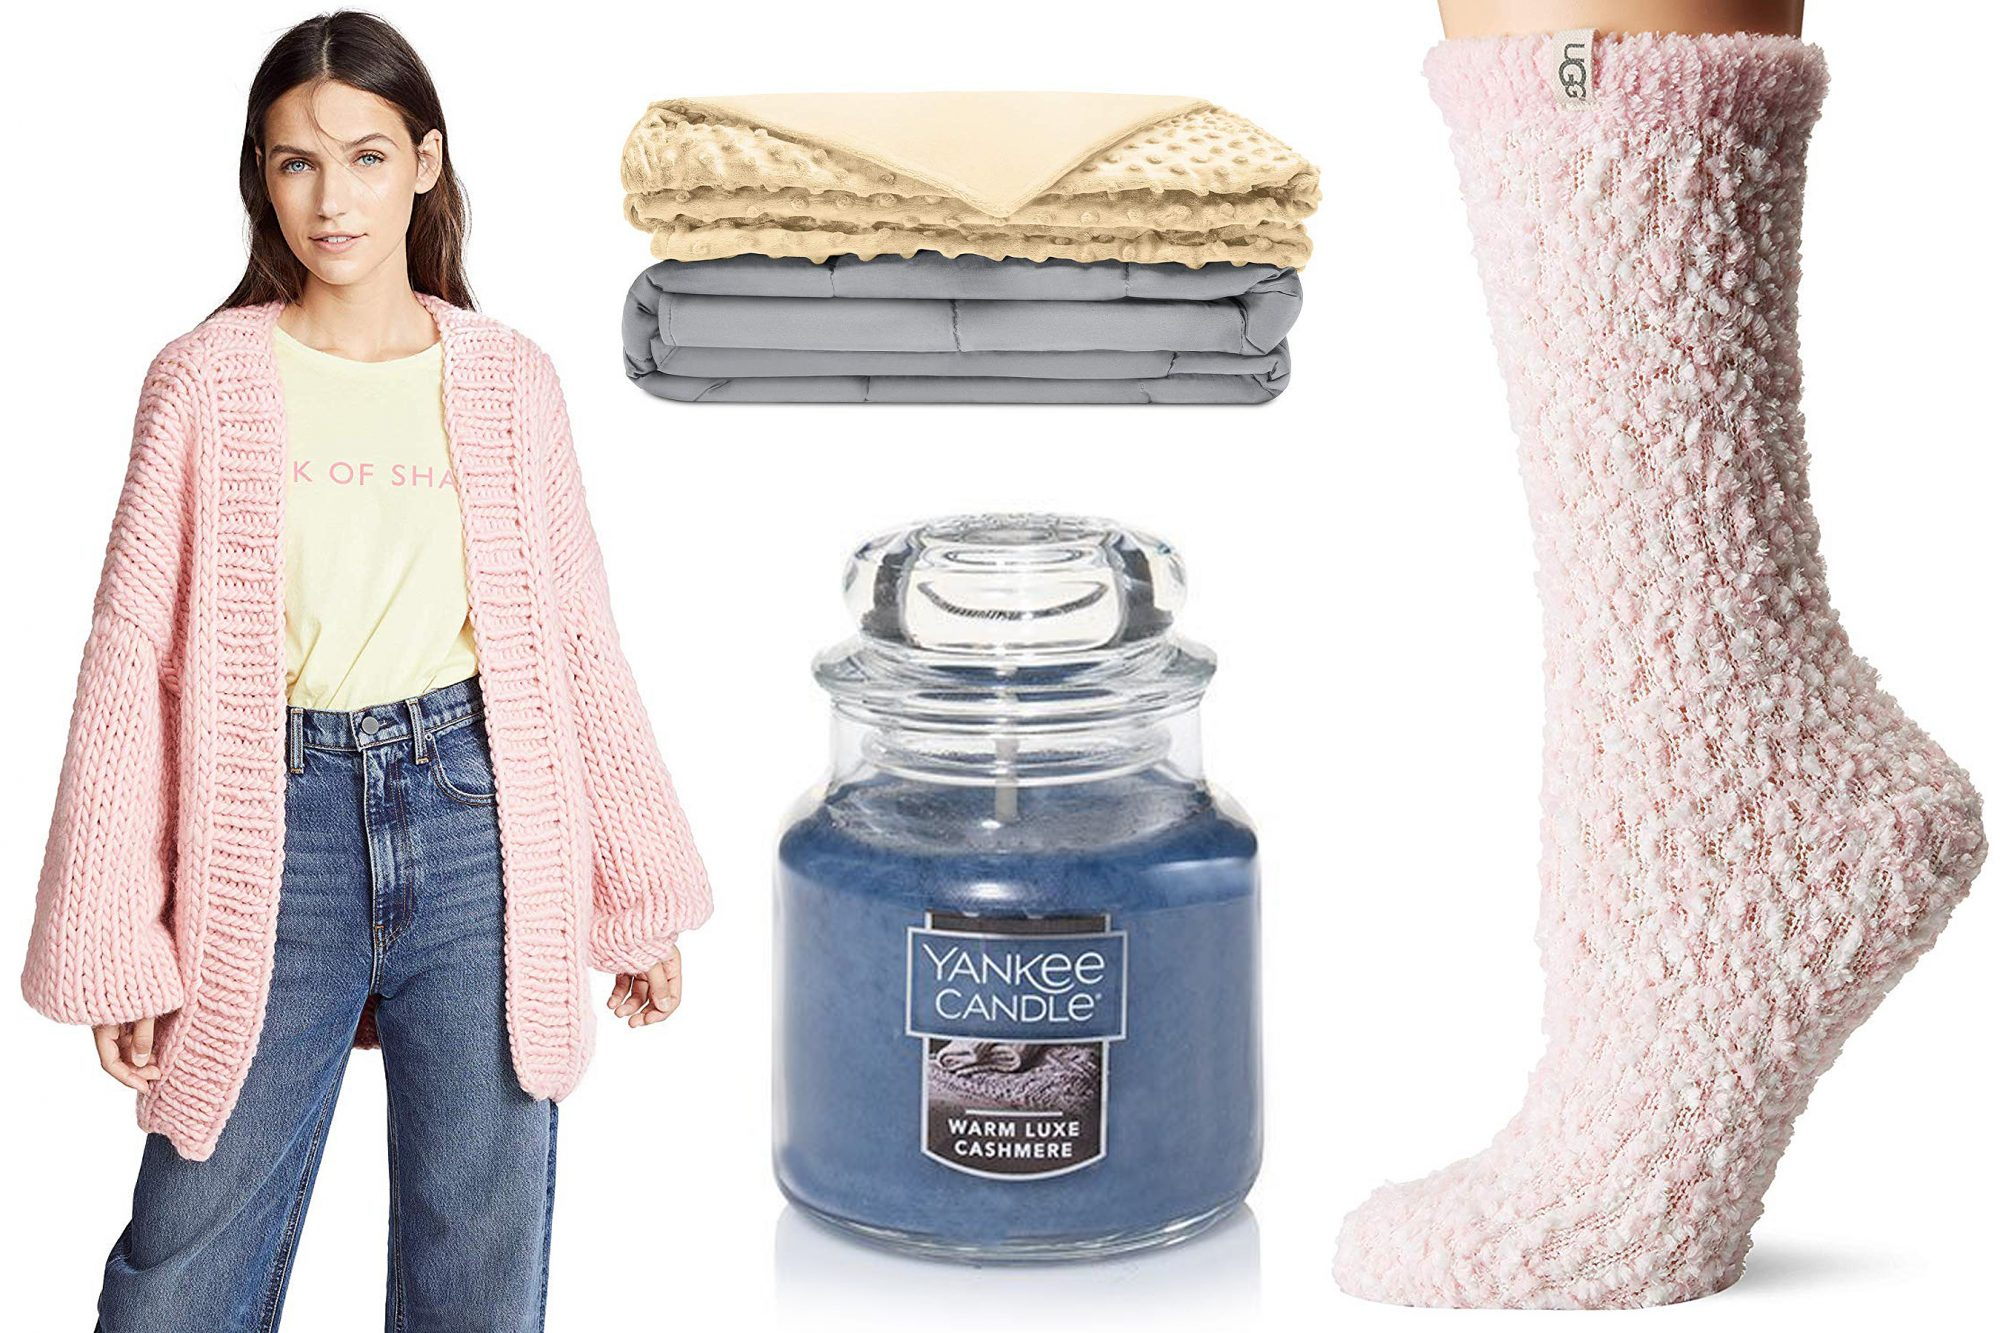 Cozy Blankets Sweaters Socks Candles